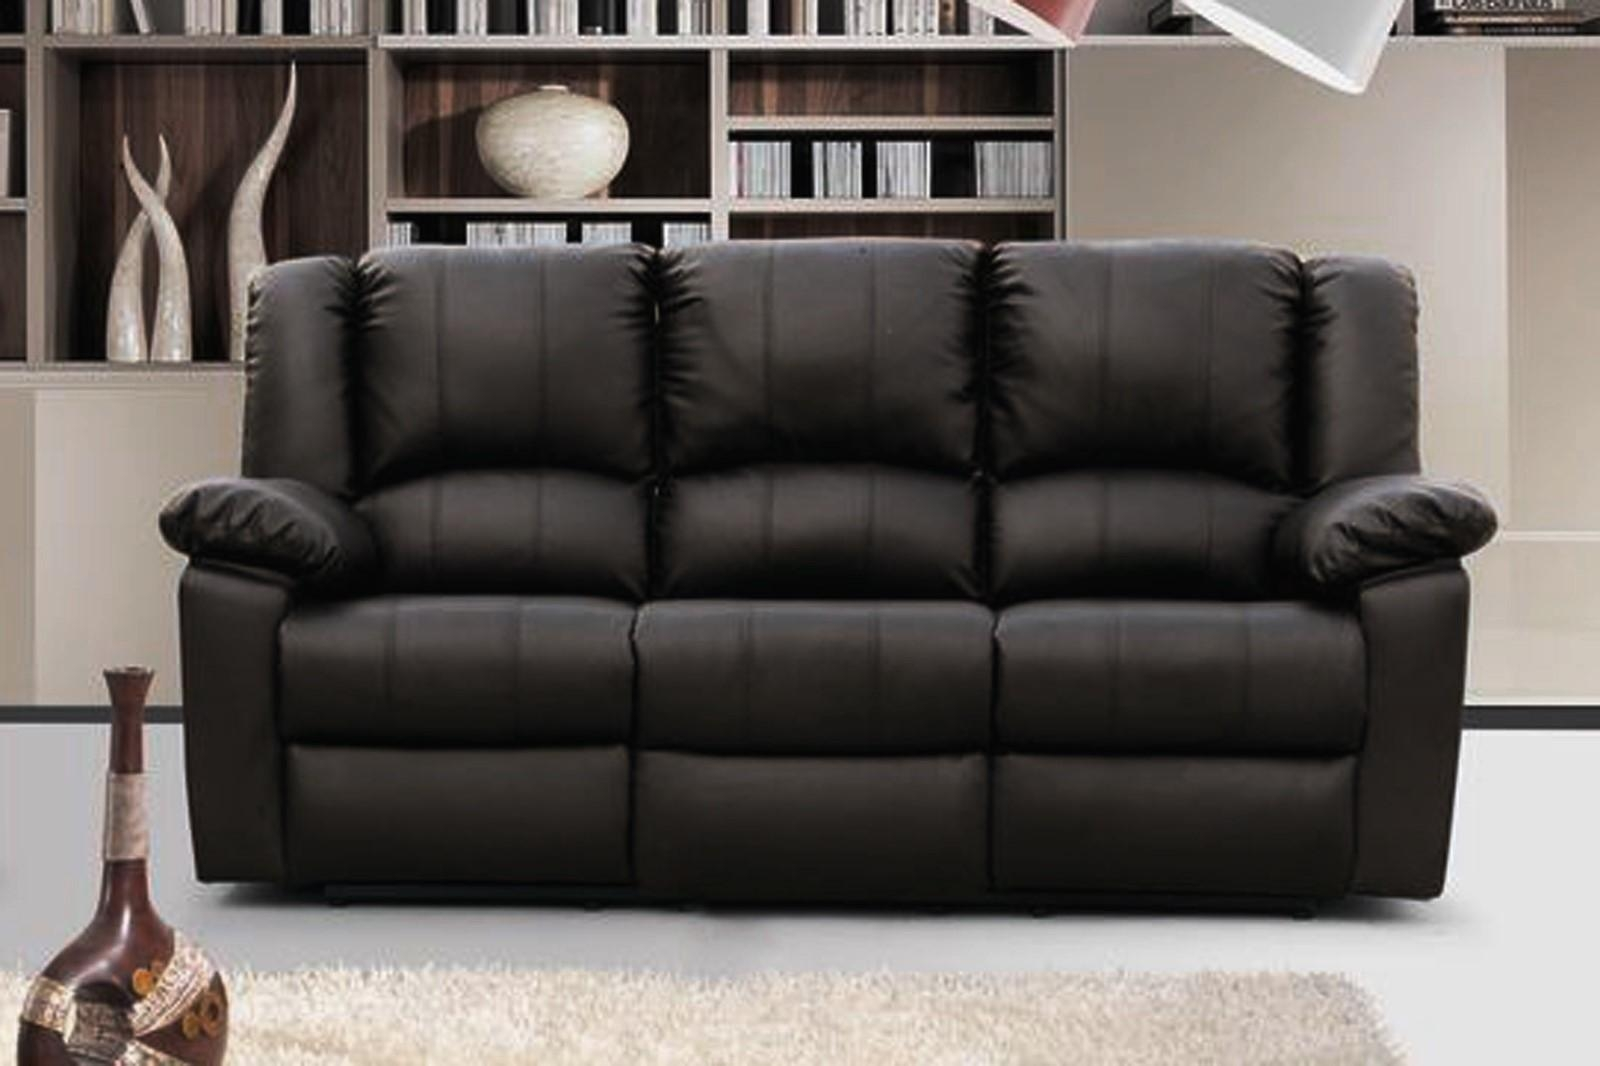 Sofa : 3 Seater Leather Sofa Recliner Home Style Tips Unique At 3 With 3 Seater Leather Sofas (Image 15 of 20)